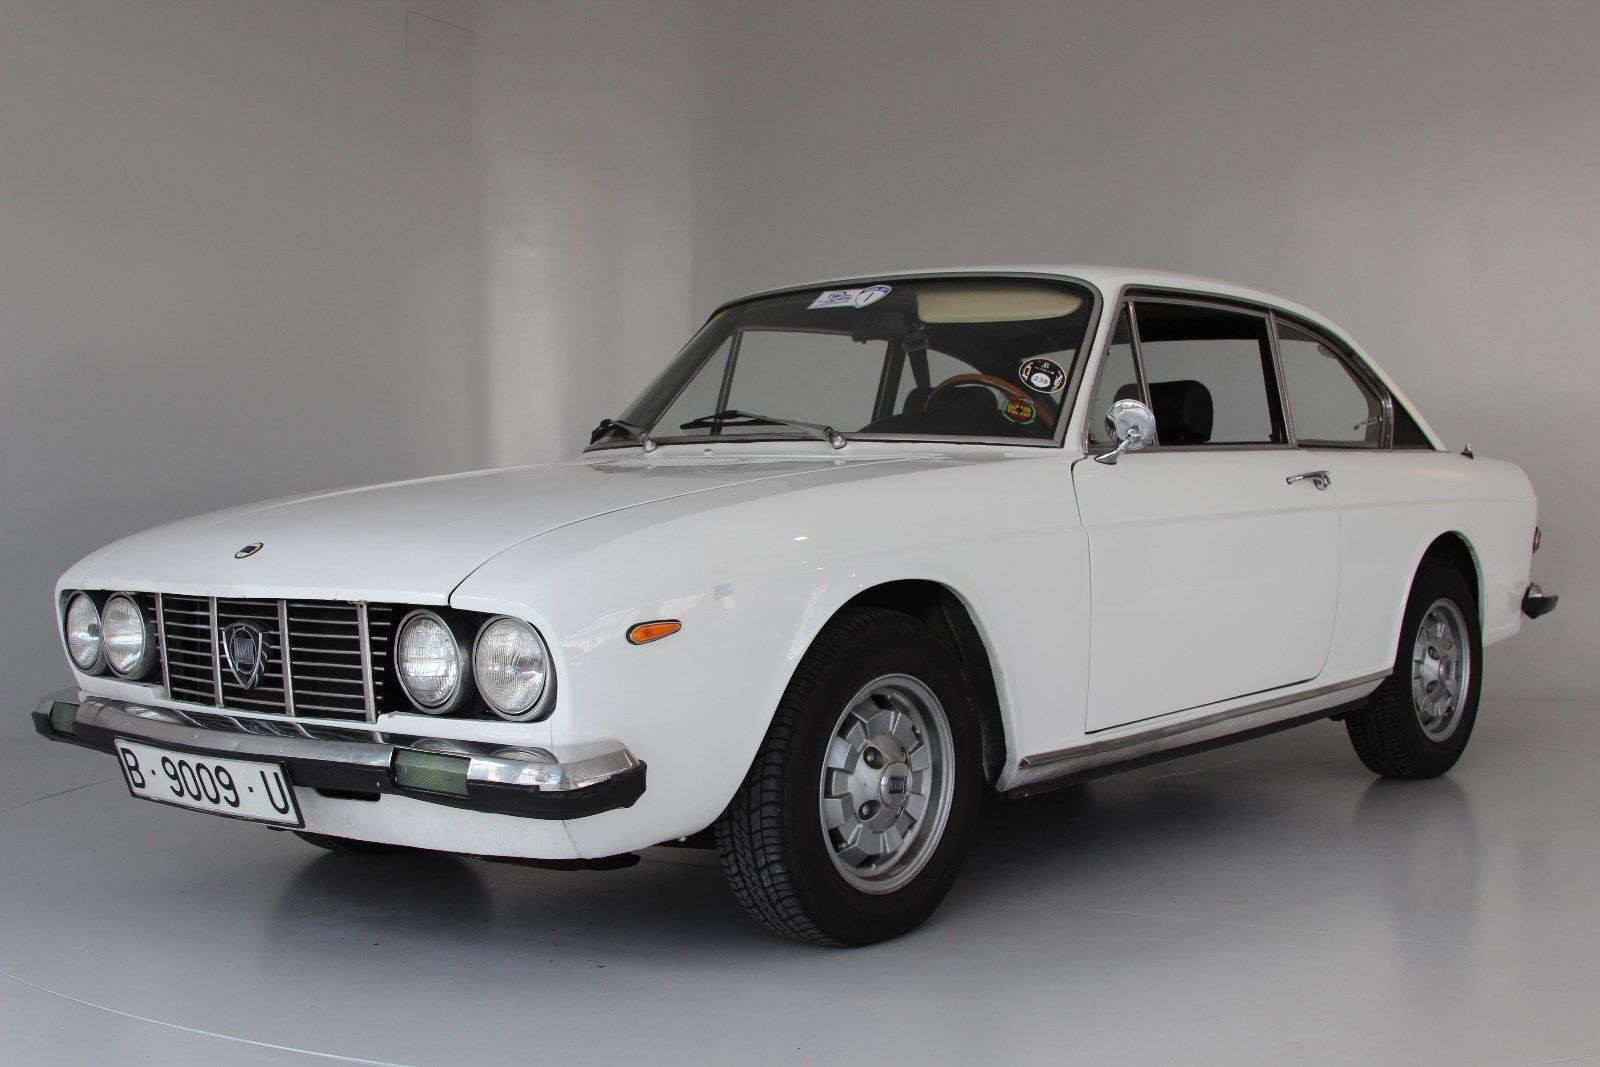 lancia flavia 2000 coup 1 hand deine autob rse finde dein auto. Black Bedroom Furniture Sets. Home Design Ideas